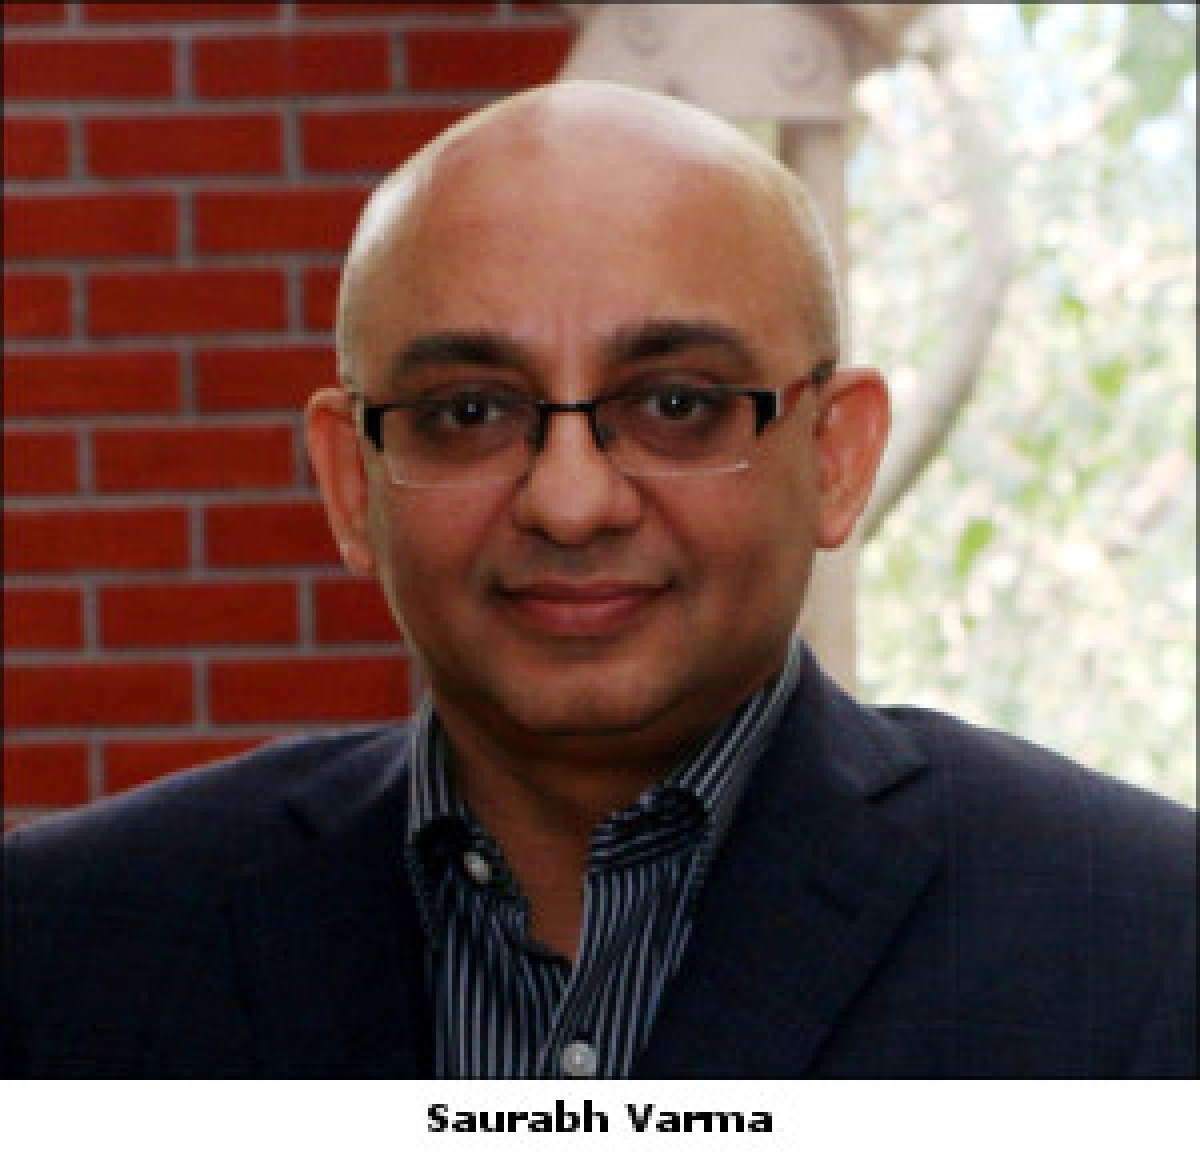 Saurabh Varma appointed CEO, Publicis Communications India